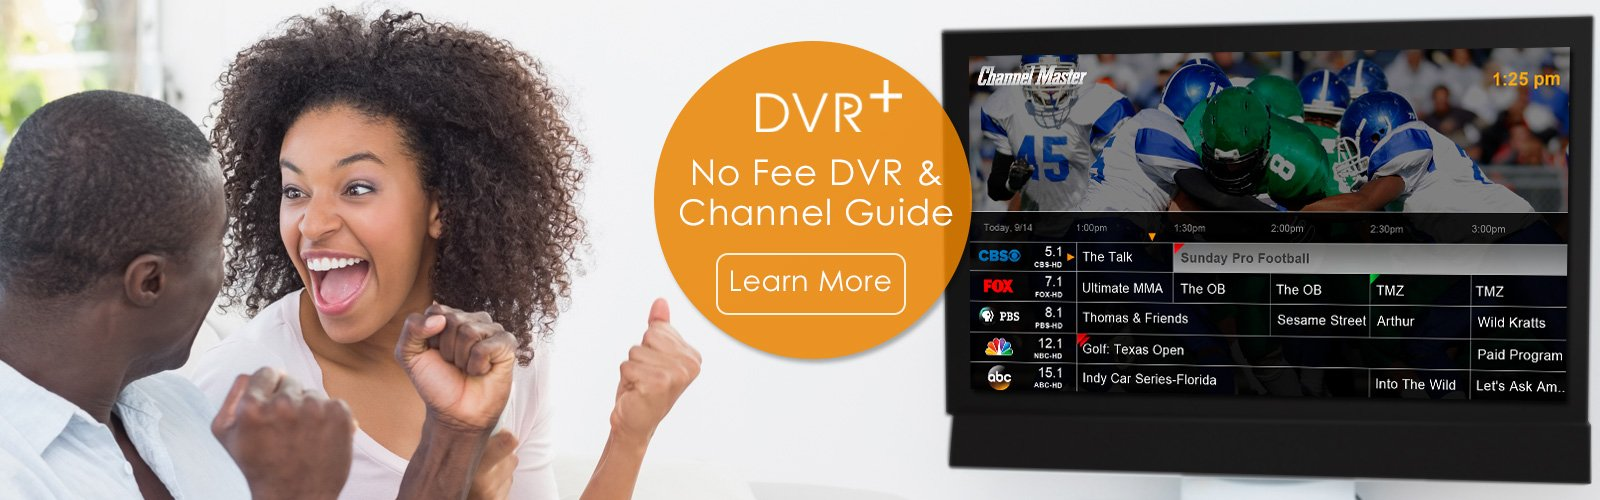 No Fee DVR and Channel Guide